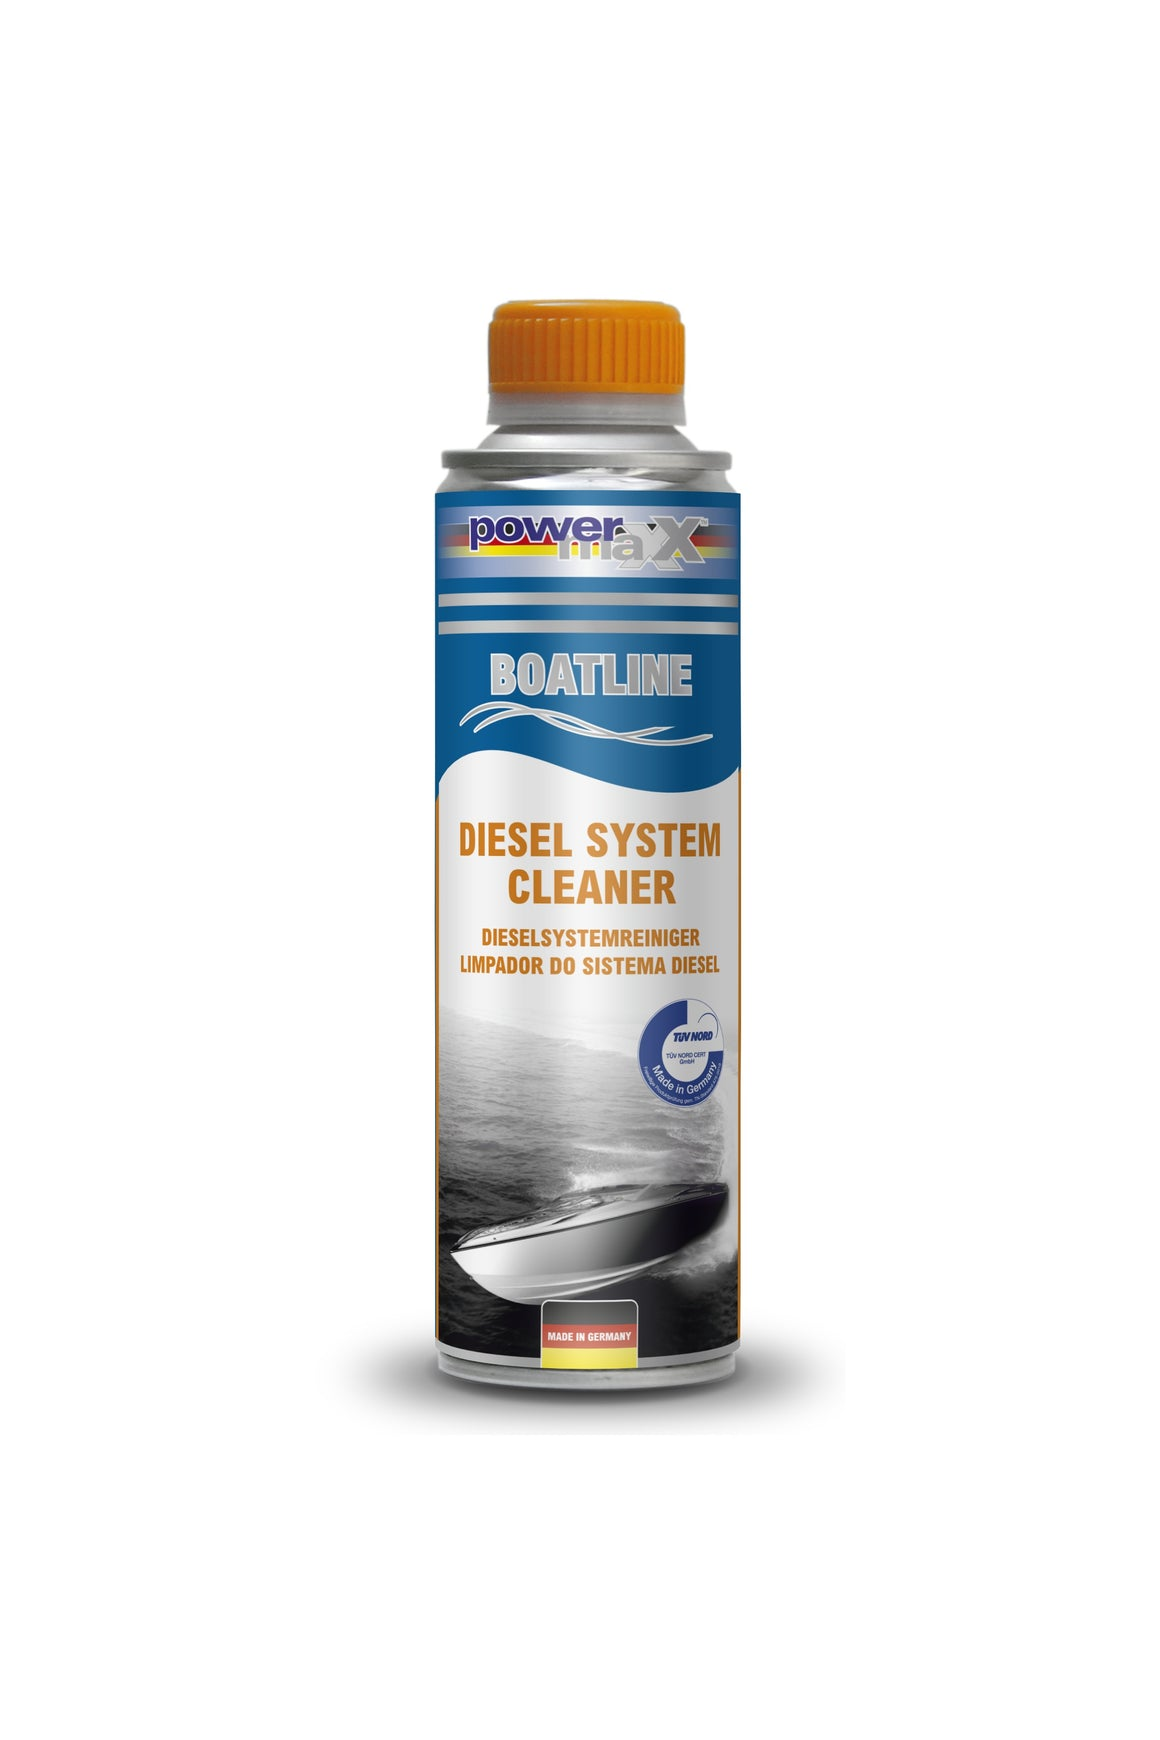 Boat-Line Diesel System Cleaner 1 Liter - Just European